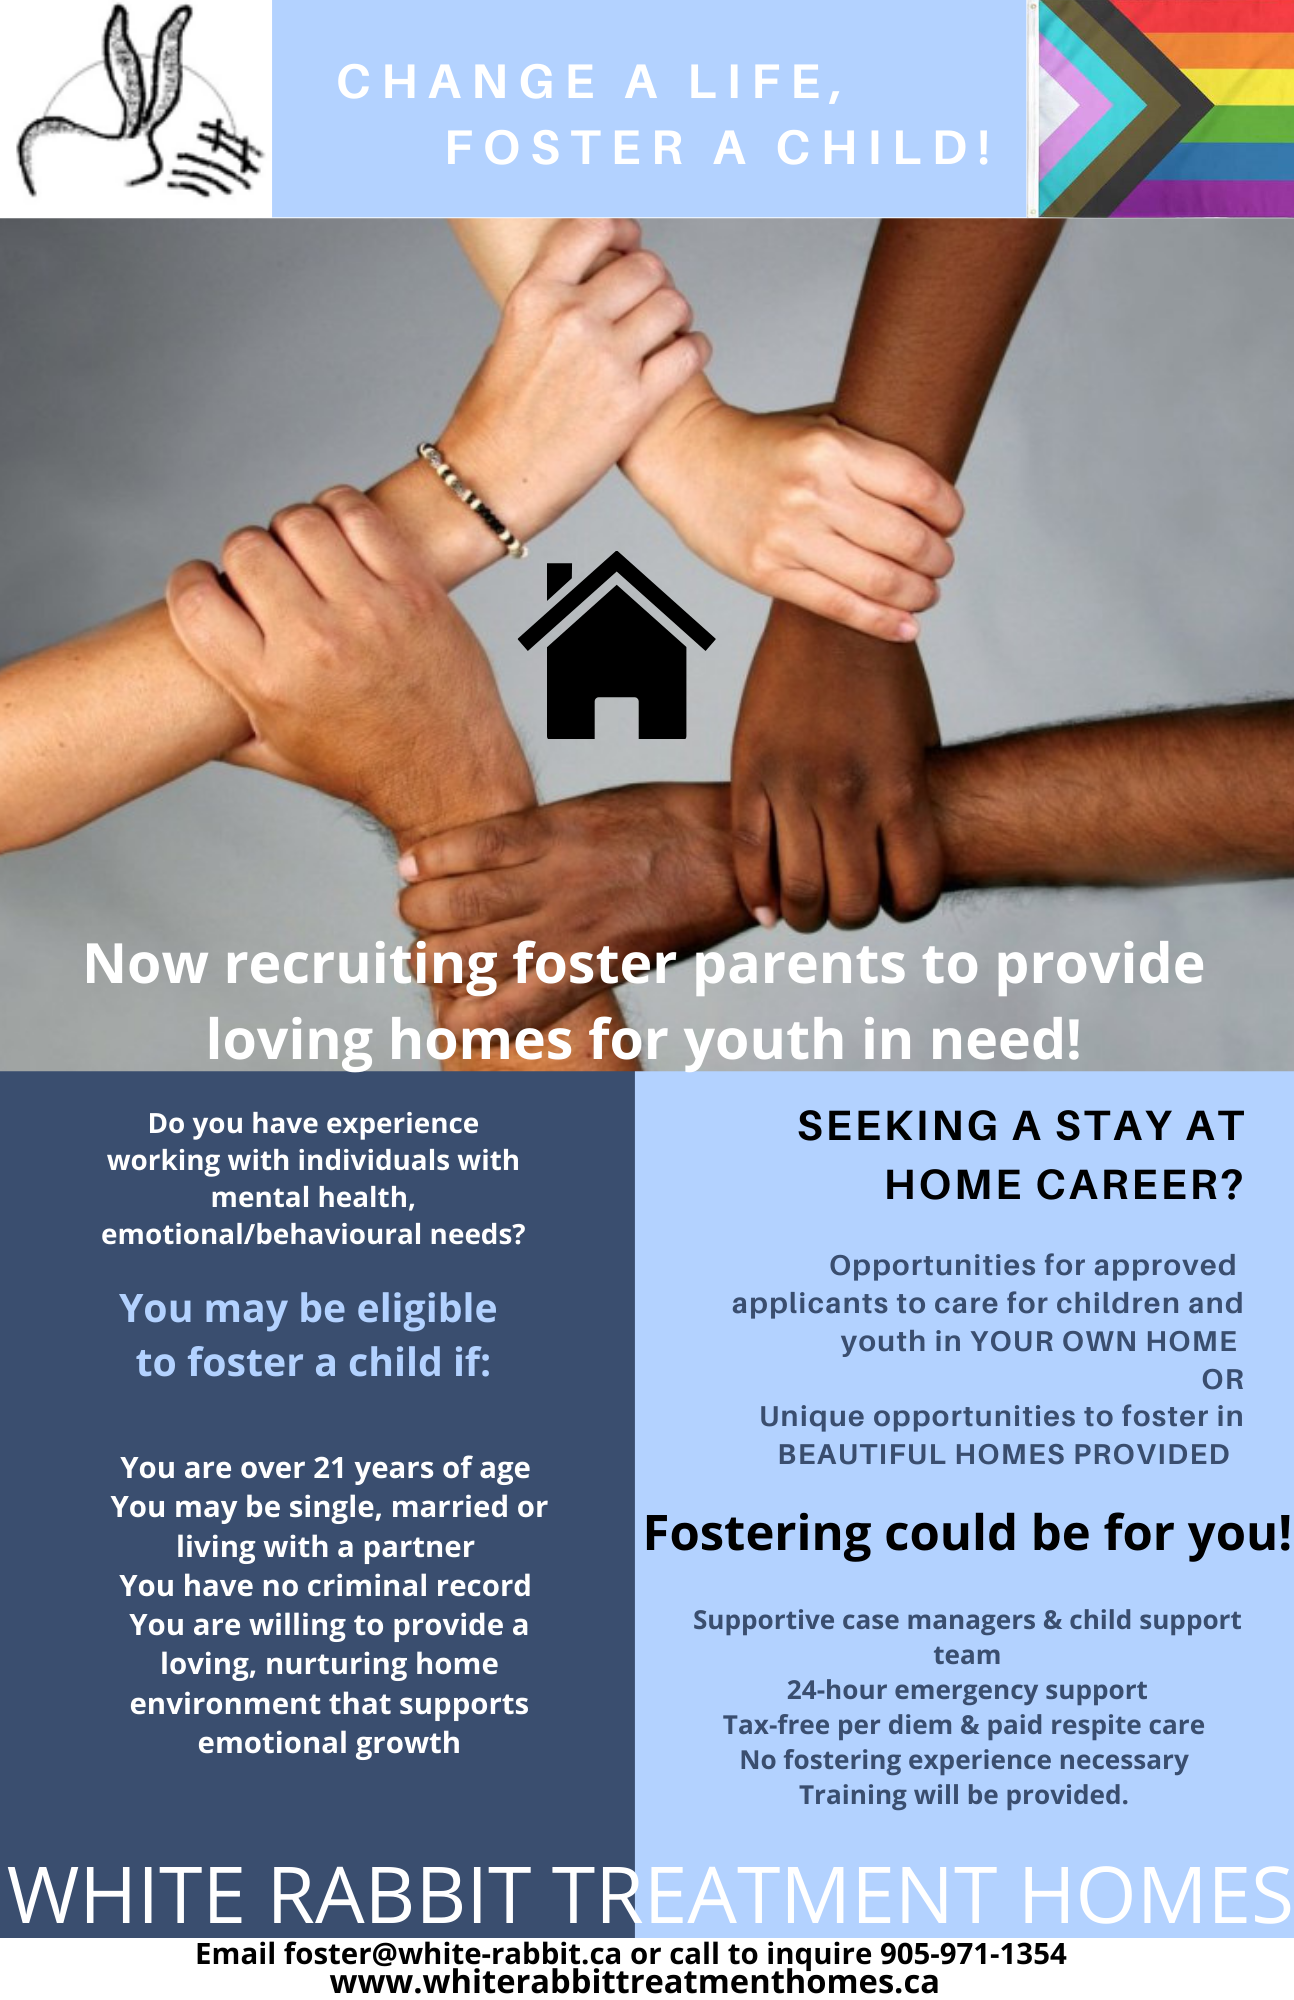 POSTER-Change-a-life-Foster-a-child